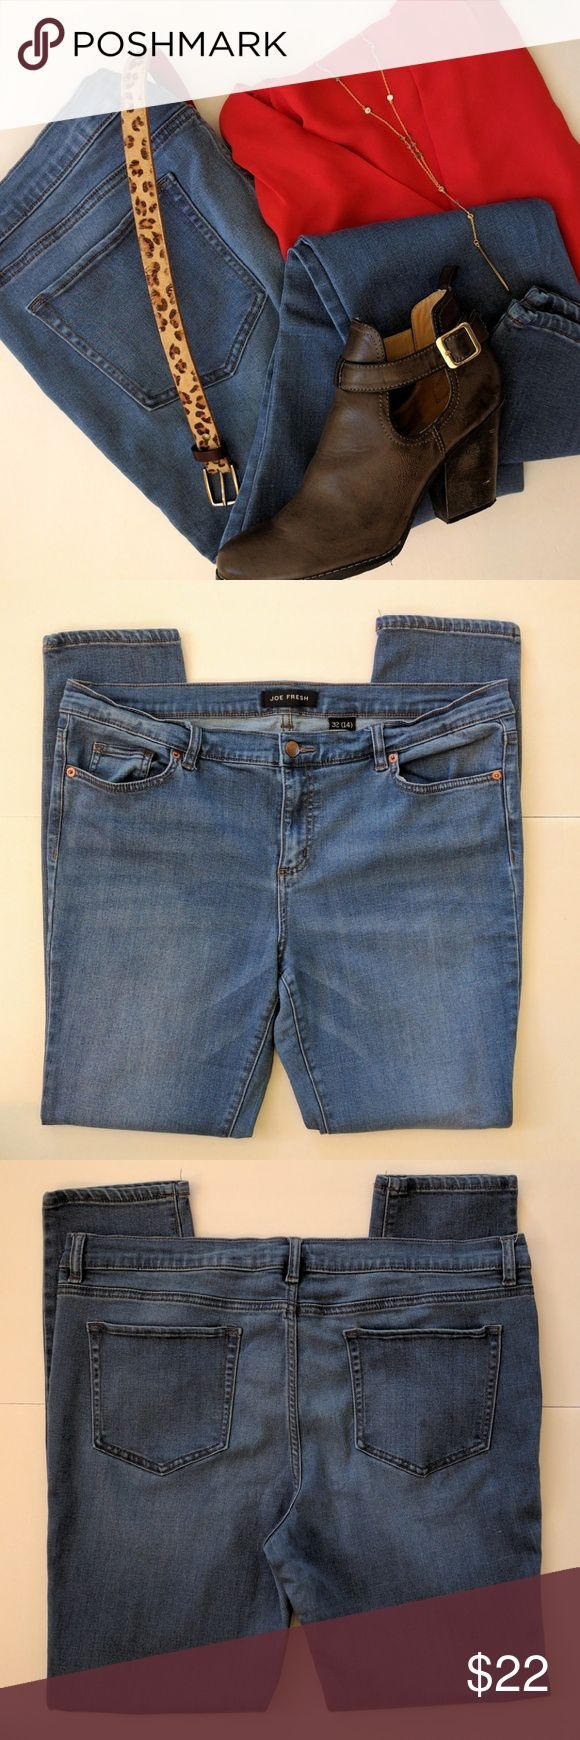 Joe Fresh Low Rise Skinny Jeans Size 14 These Joe Fresh Low Rise Leggings and in like new condition in a great lighter medium wash. Super comfortable and flattering! Size 14 Joe Fresh Jeans Skinny